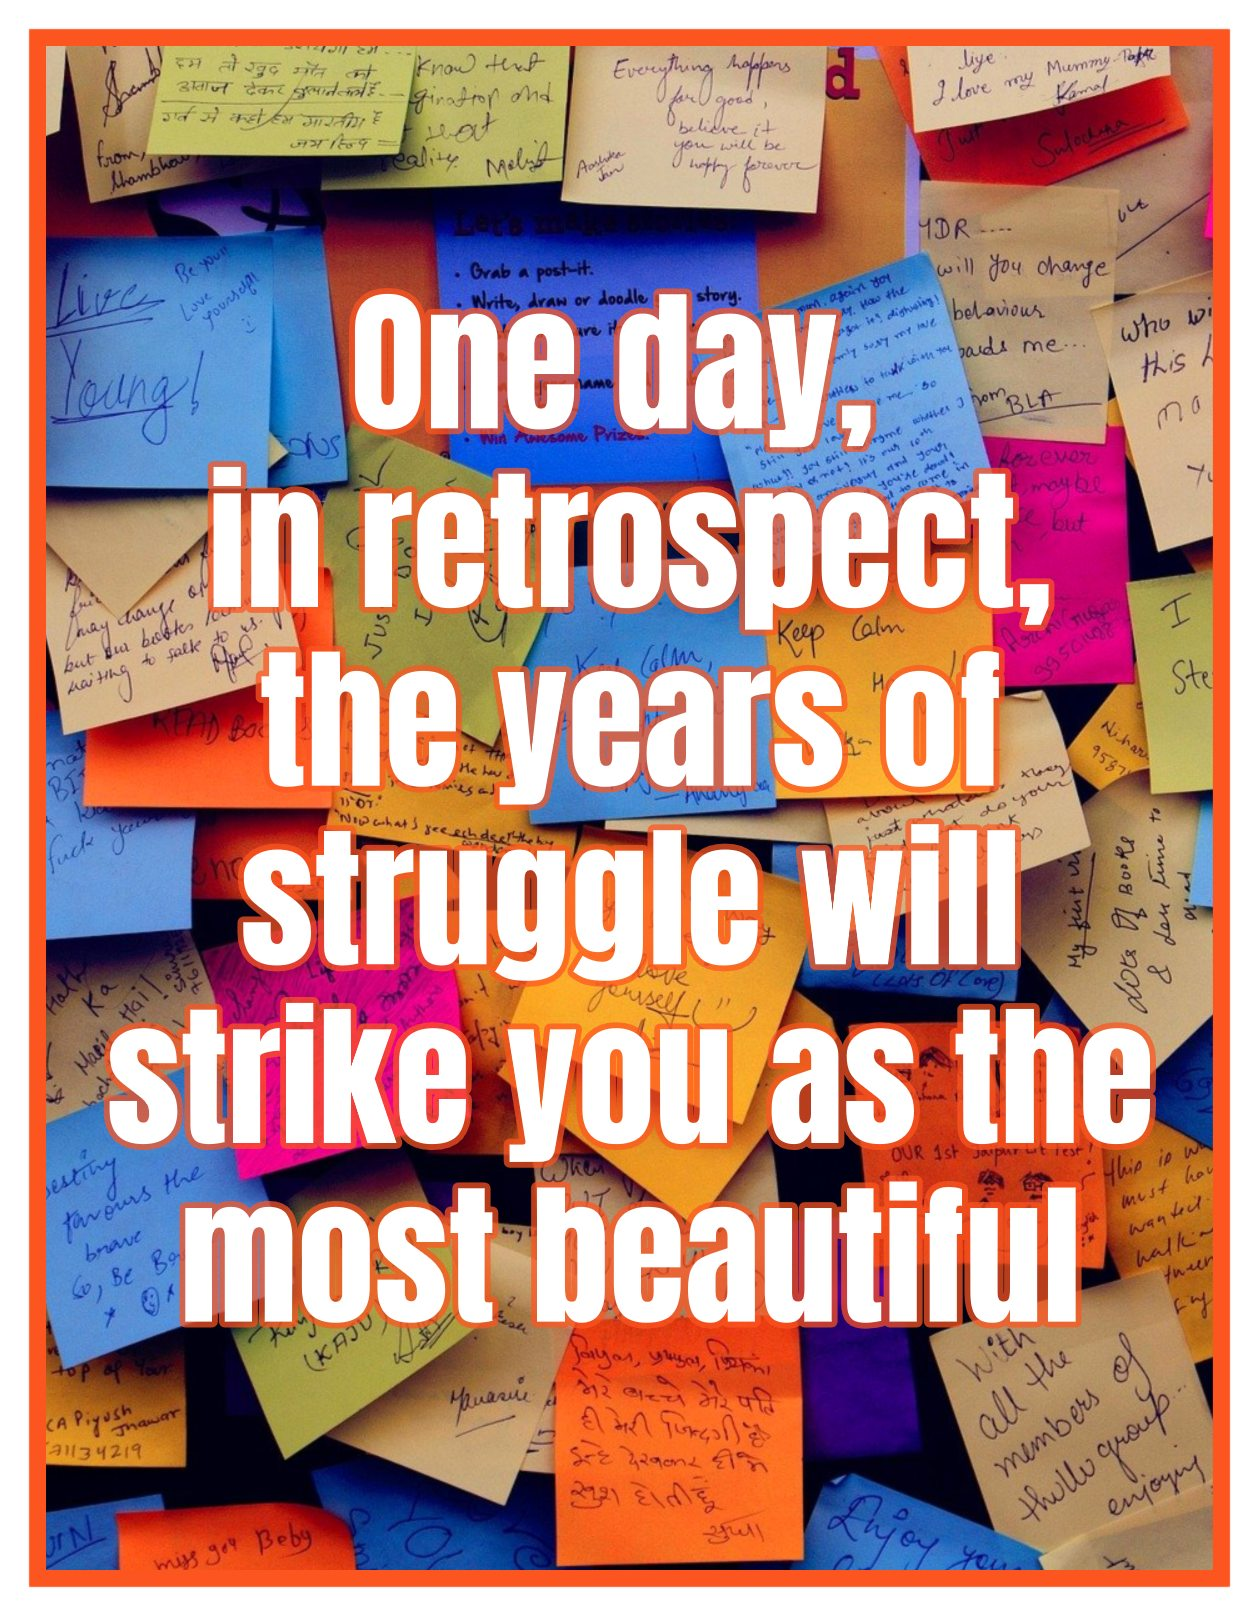 One day, in retrospect, the years of struggle will strike you as the most beautiful. Sigmund Freud bekitschig blog